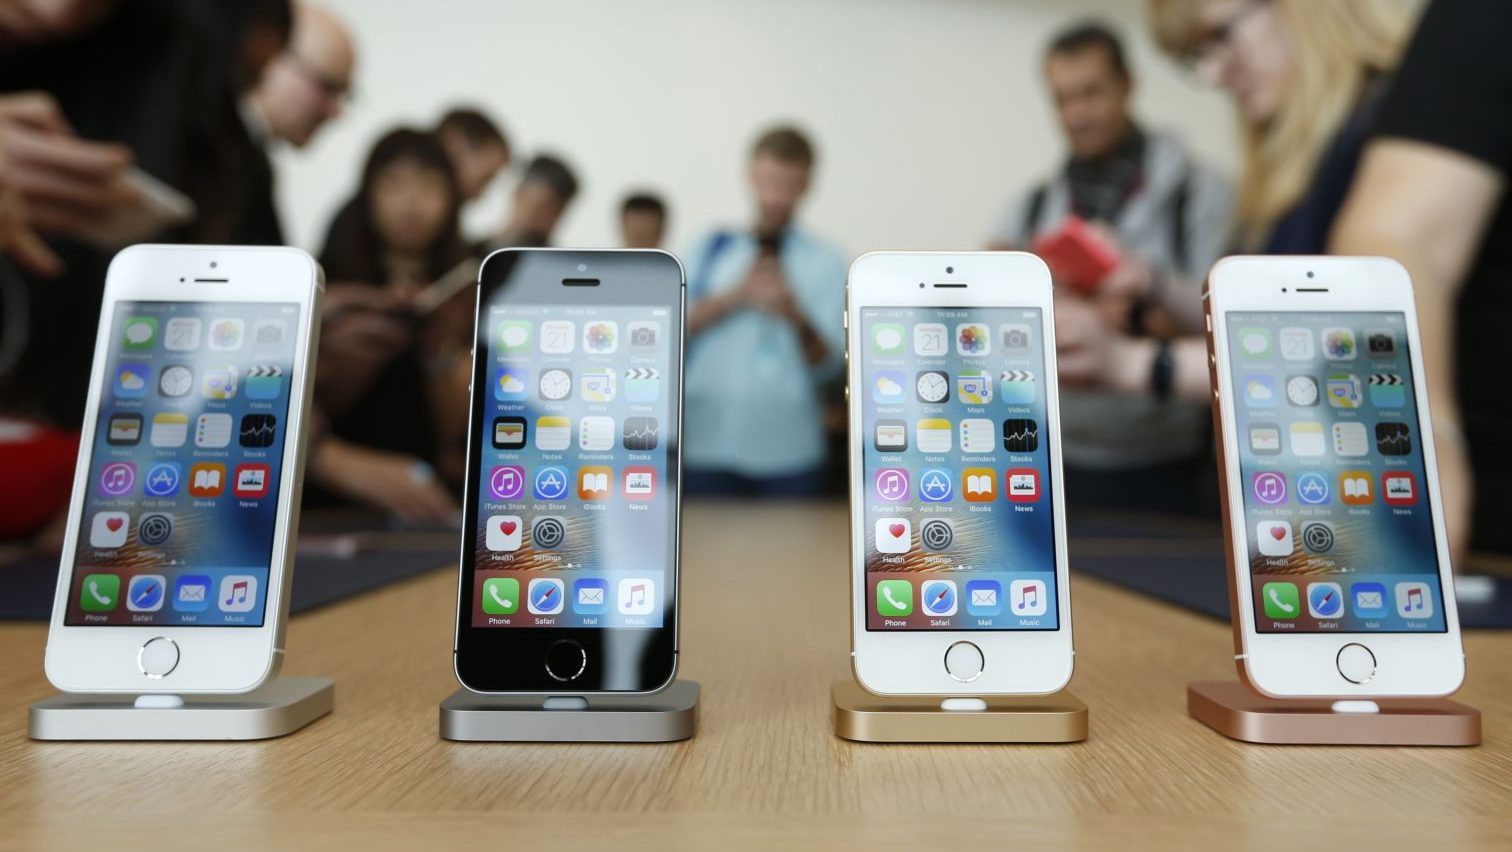 The new iPhone SE is seen on display during an event at the Apple headquarters in Cupertino, California March 21, 2016. REUTERS/Stephen Lam - RTSBJ3K